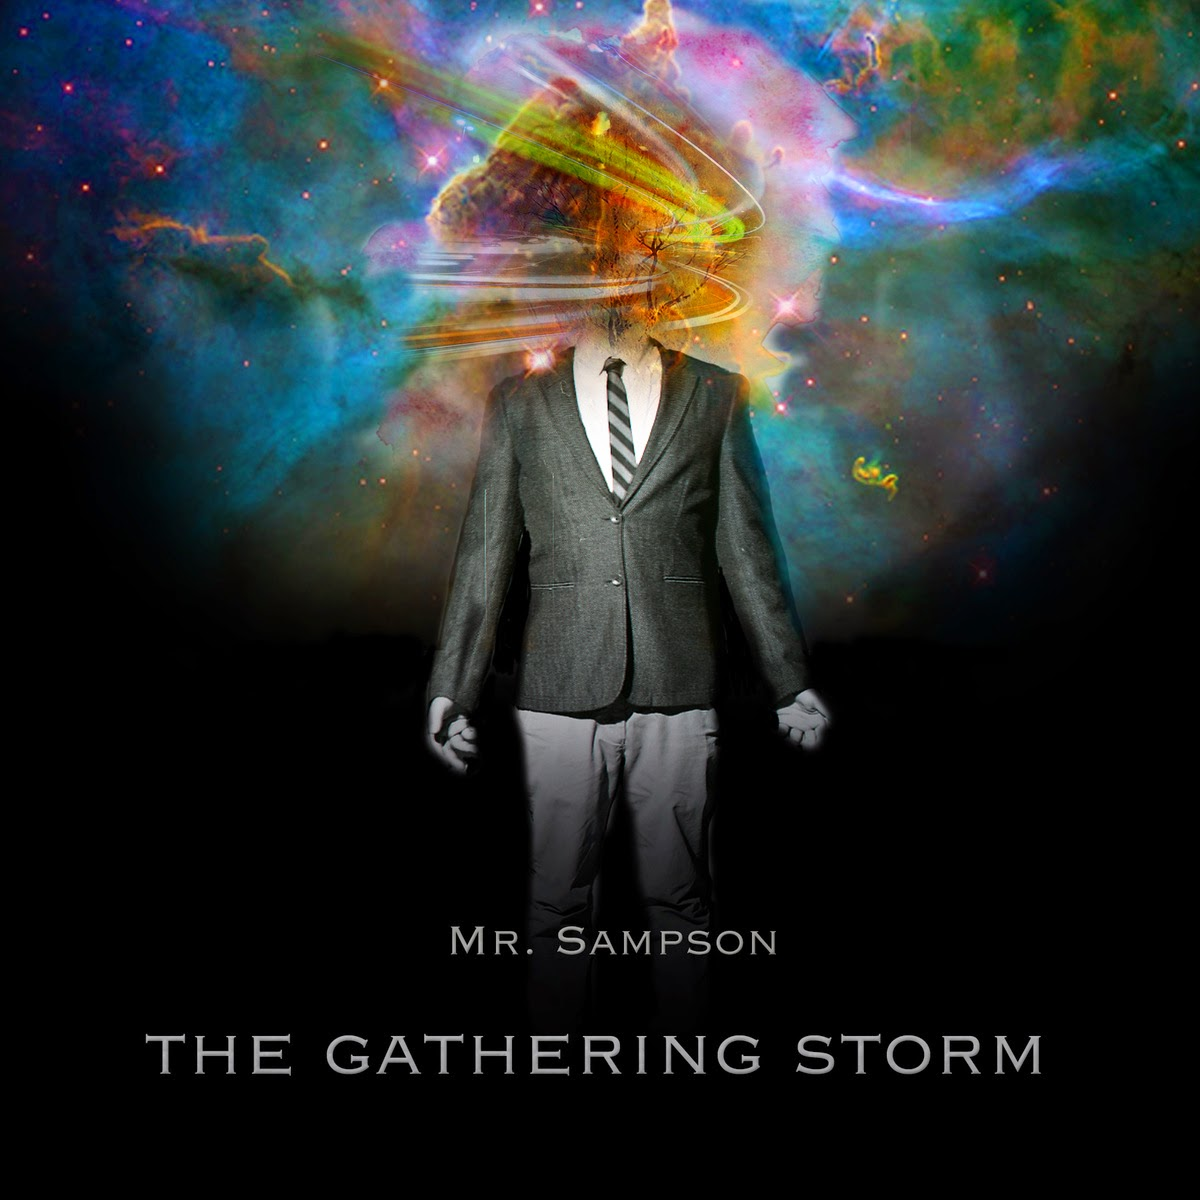 http://www.d4am.net/2015/03/mr-sampson-gathering-storm-free-download.html